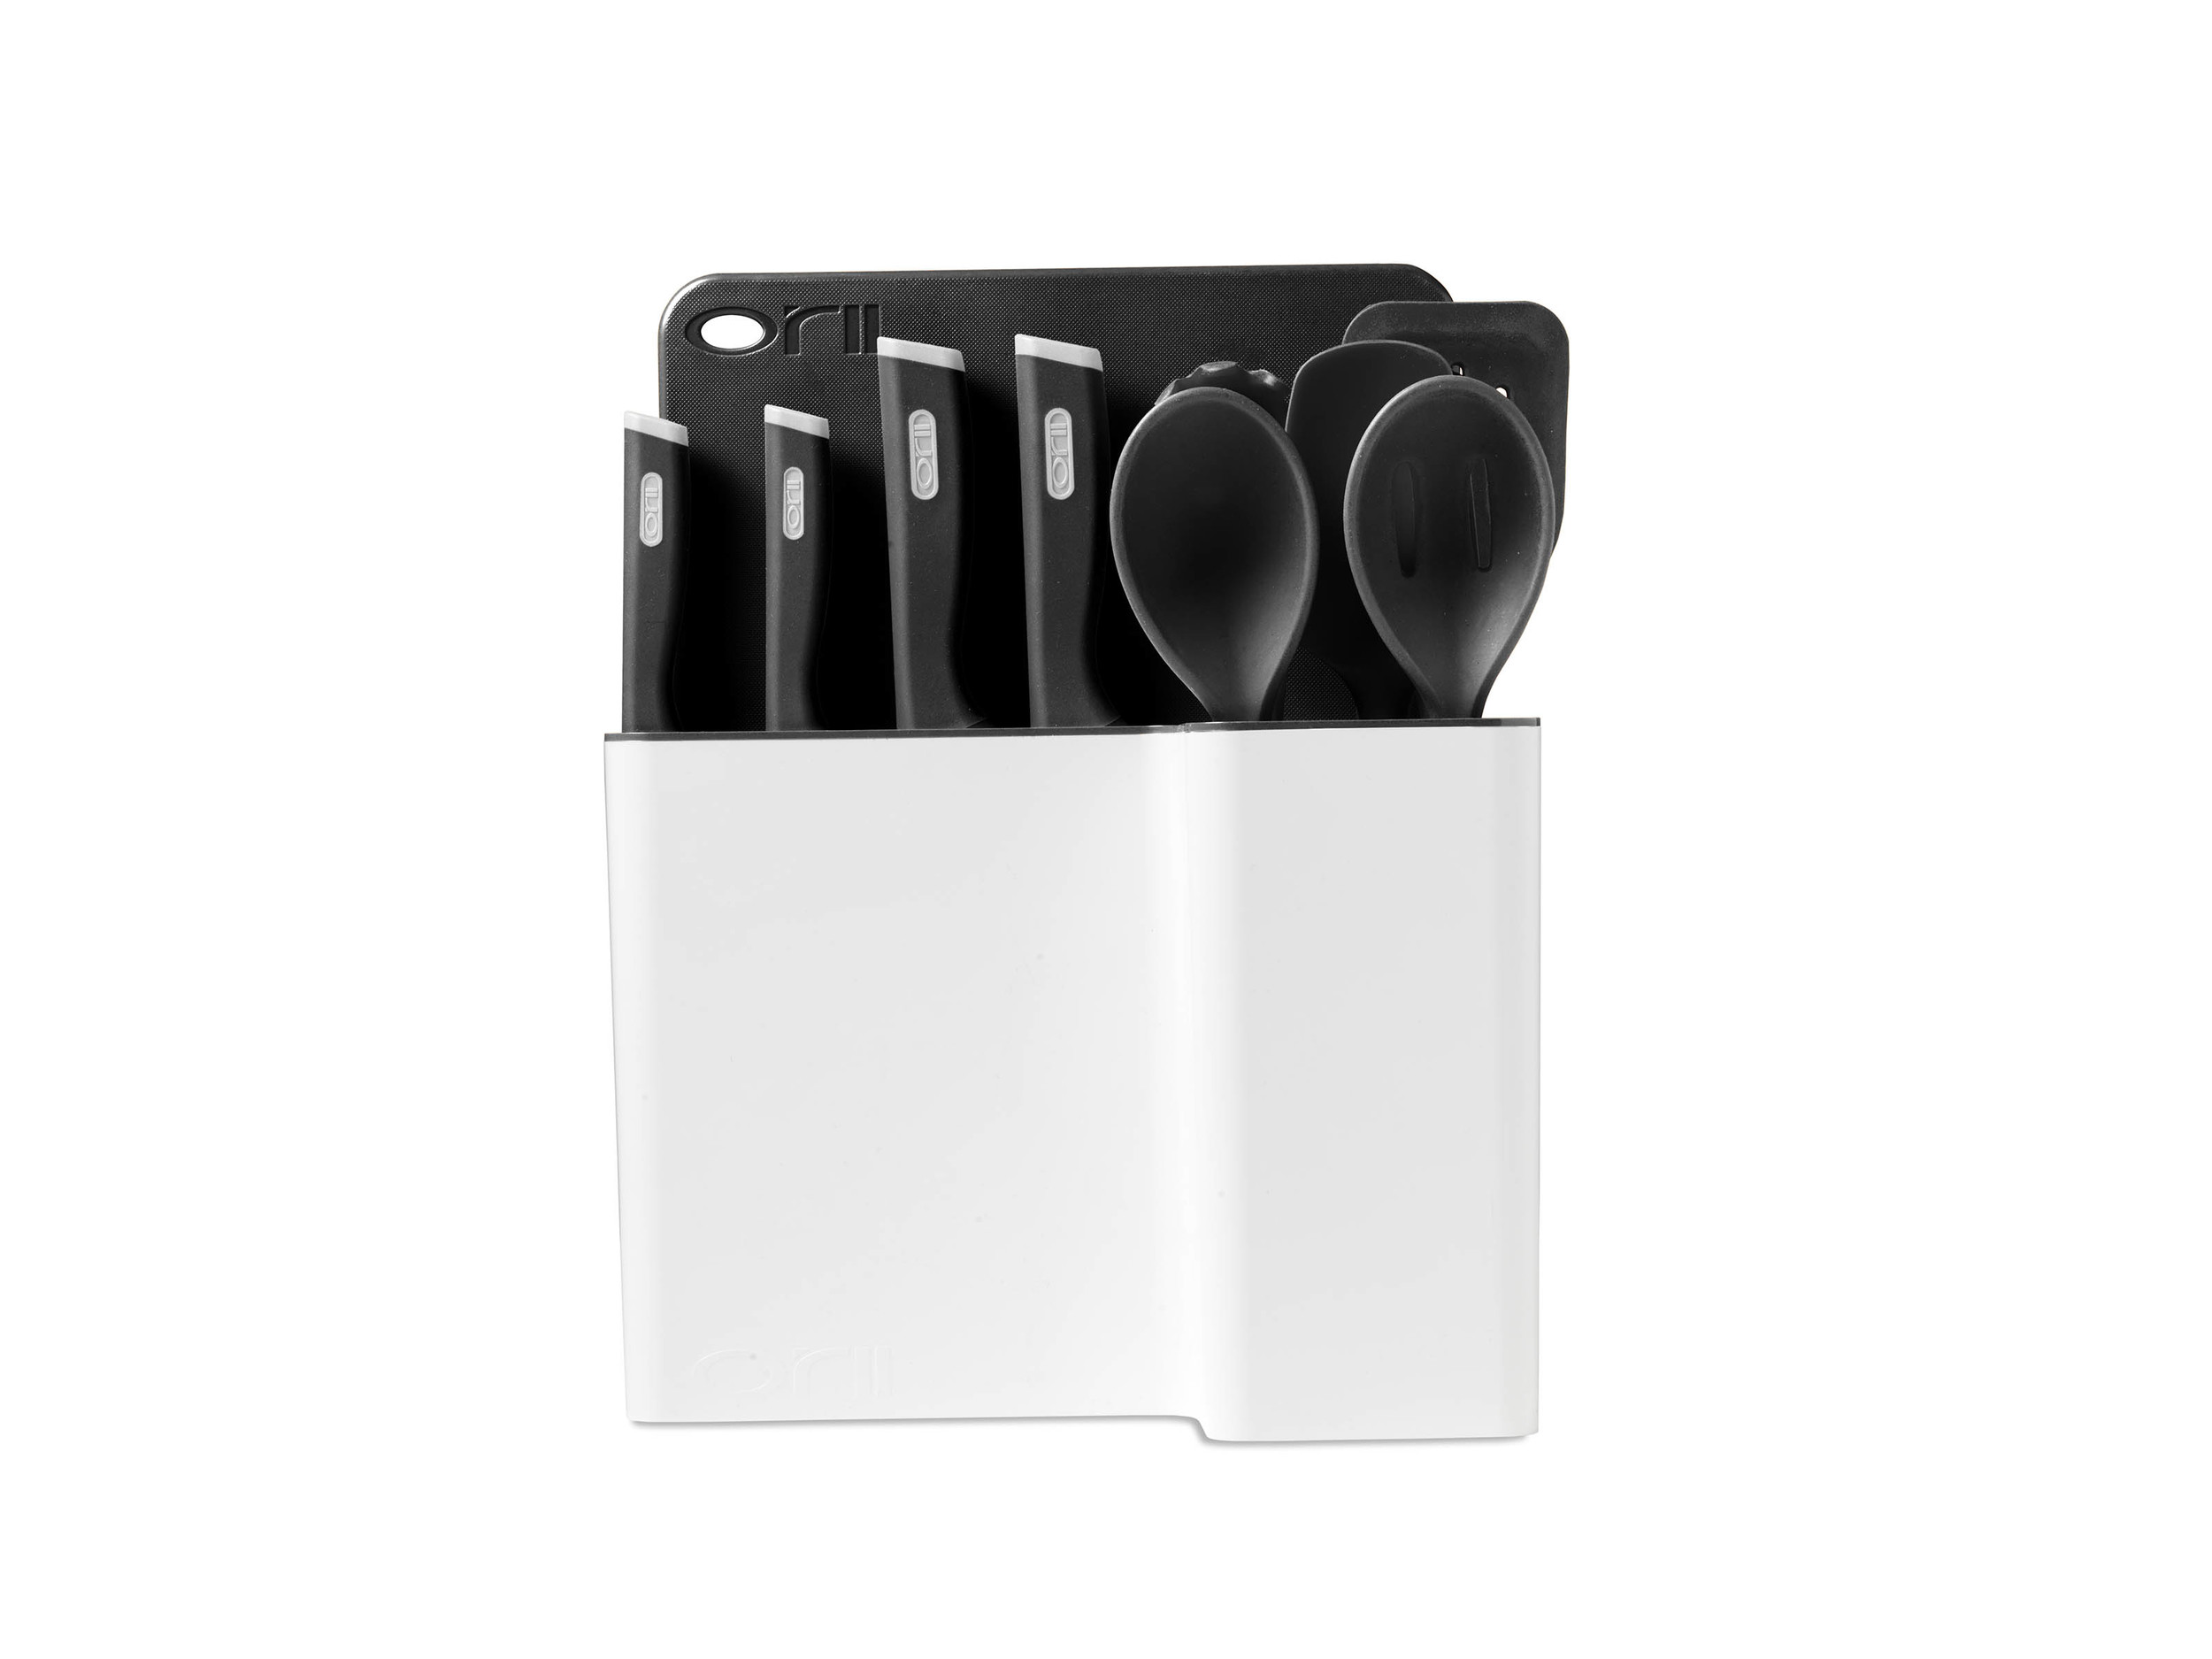 Orii 12PC MONO KITCHEN ORGANIZATION SET - CHARCOAL GREY